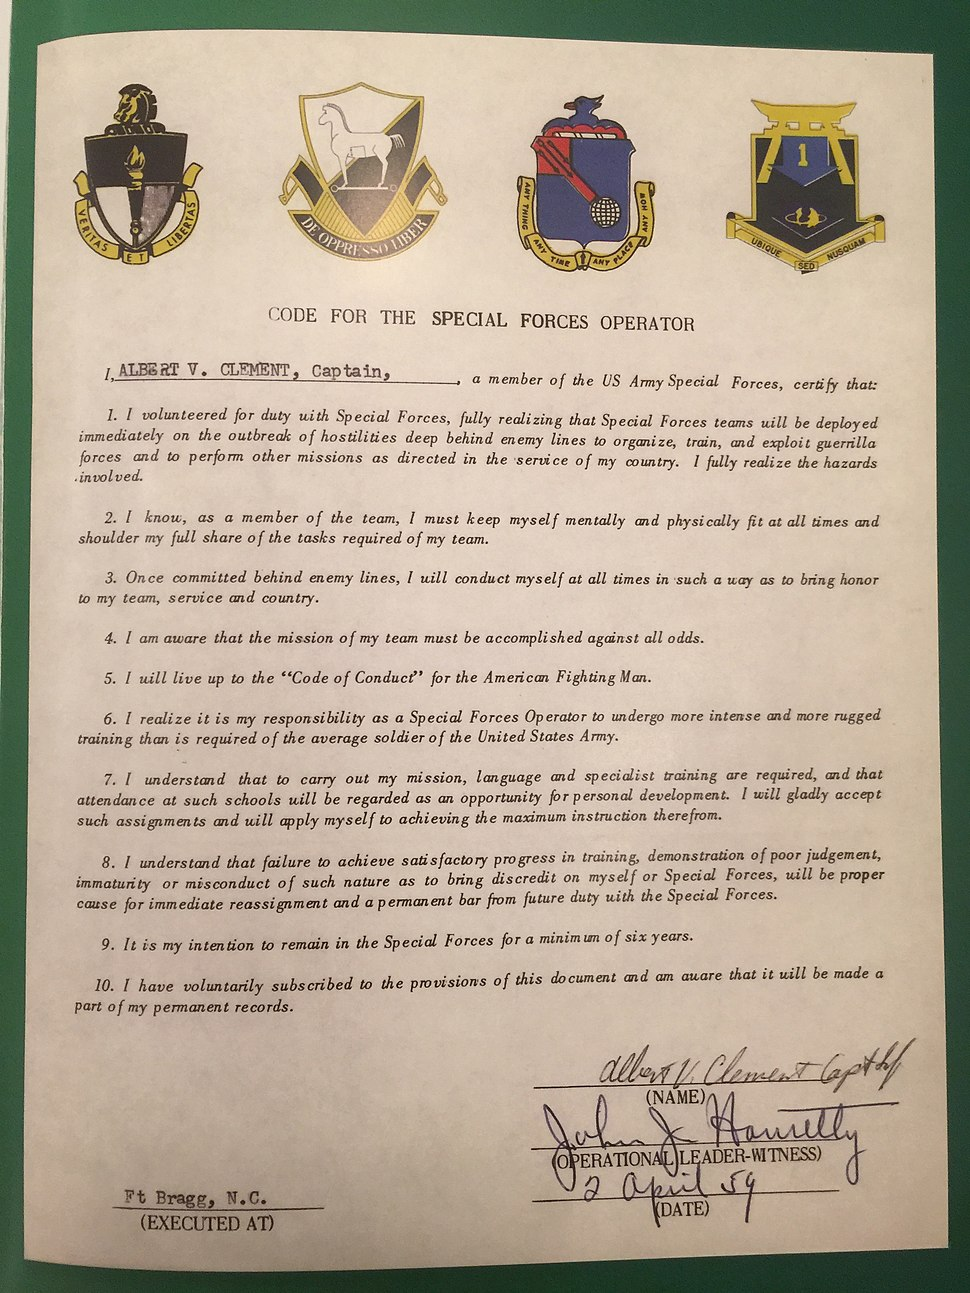 Code of the Special Forces Operator